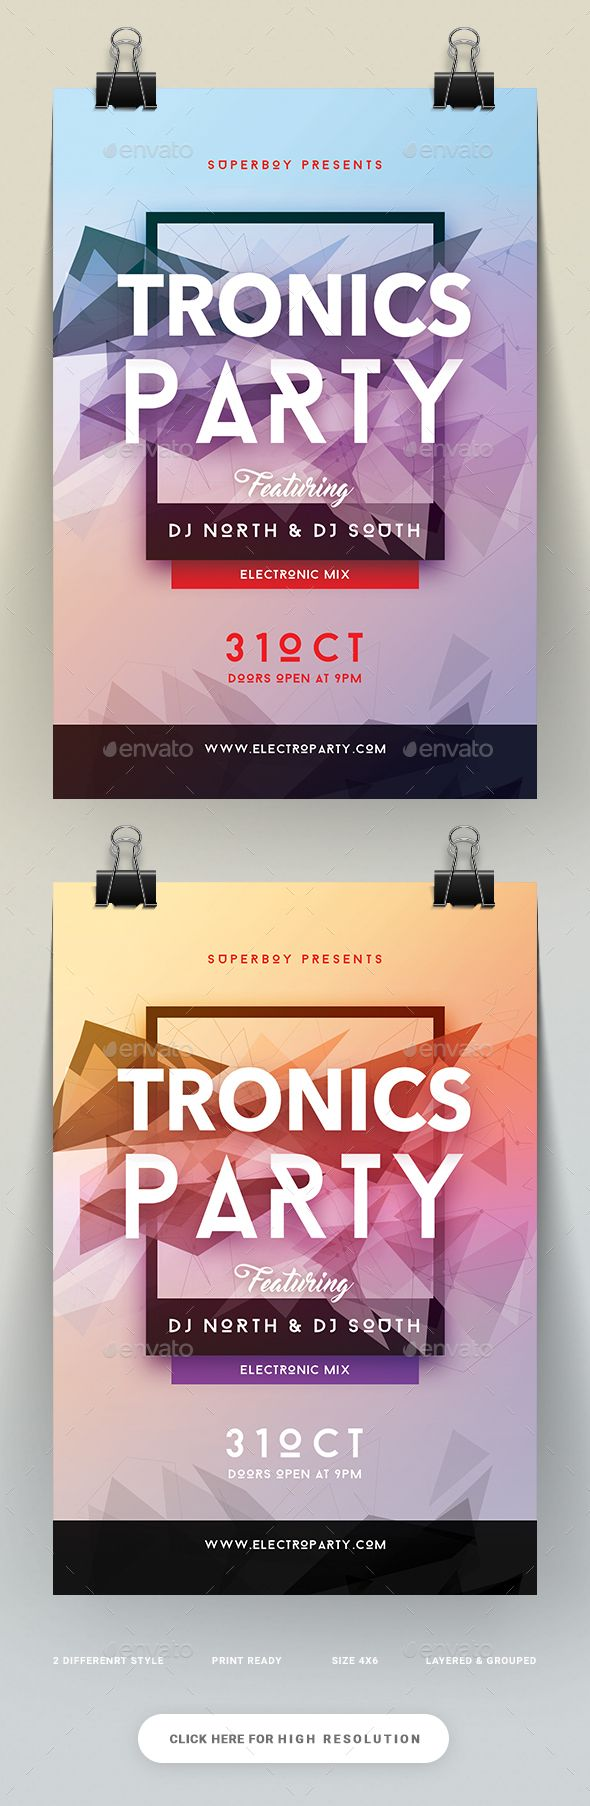 Tronics Party Flyer  — PSD Template #bar #cool flyers • Download ➝ https://graphicriver.net/item/tronics-party-flyer/18048321?ref=pxcr